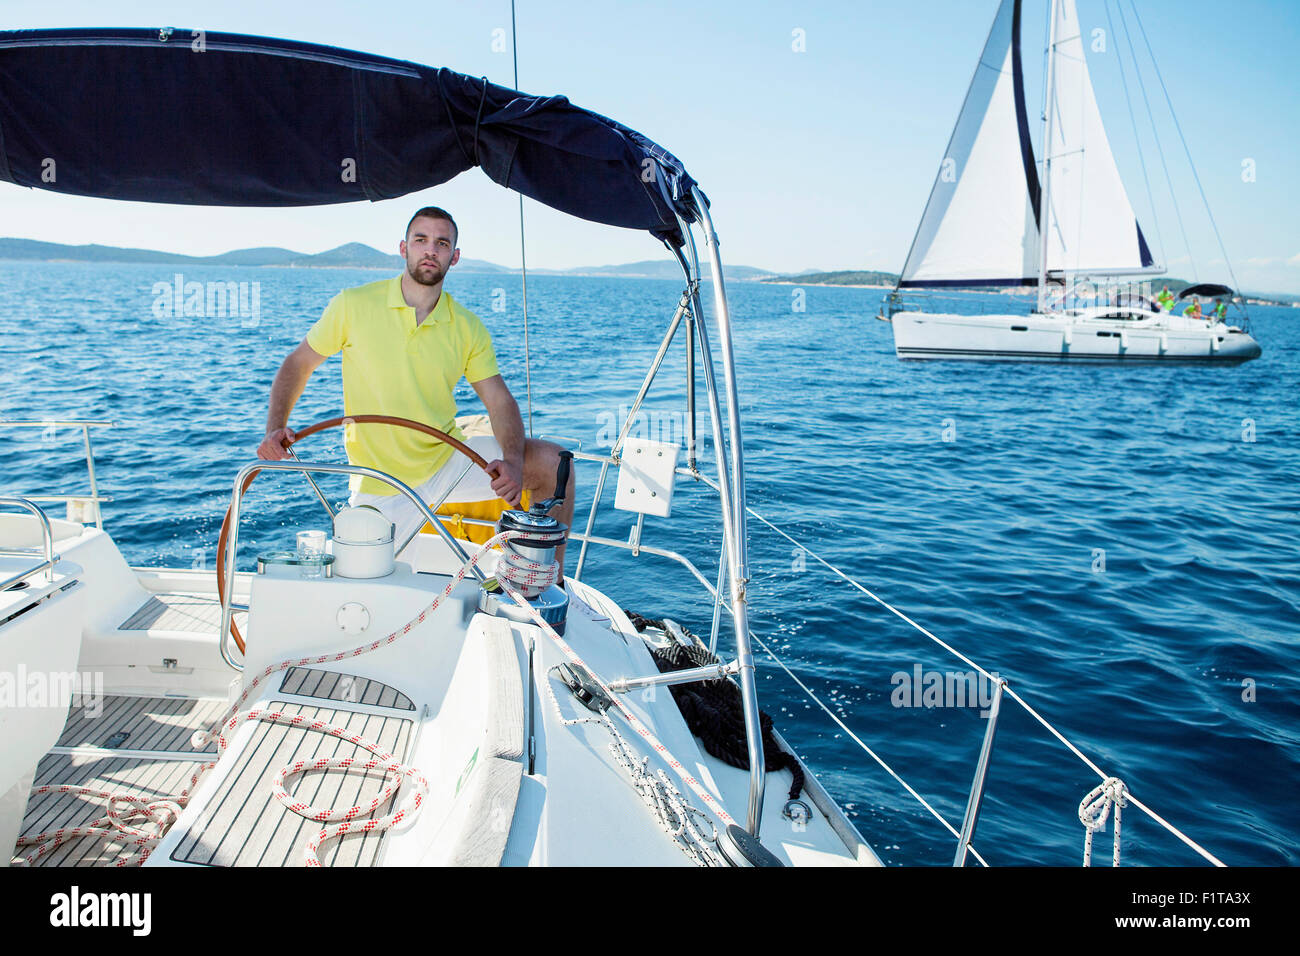 Young man steering sailboat, Adriatic Sea - Stock Image